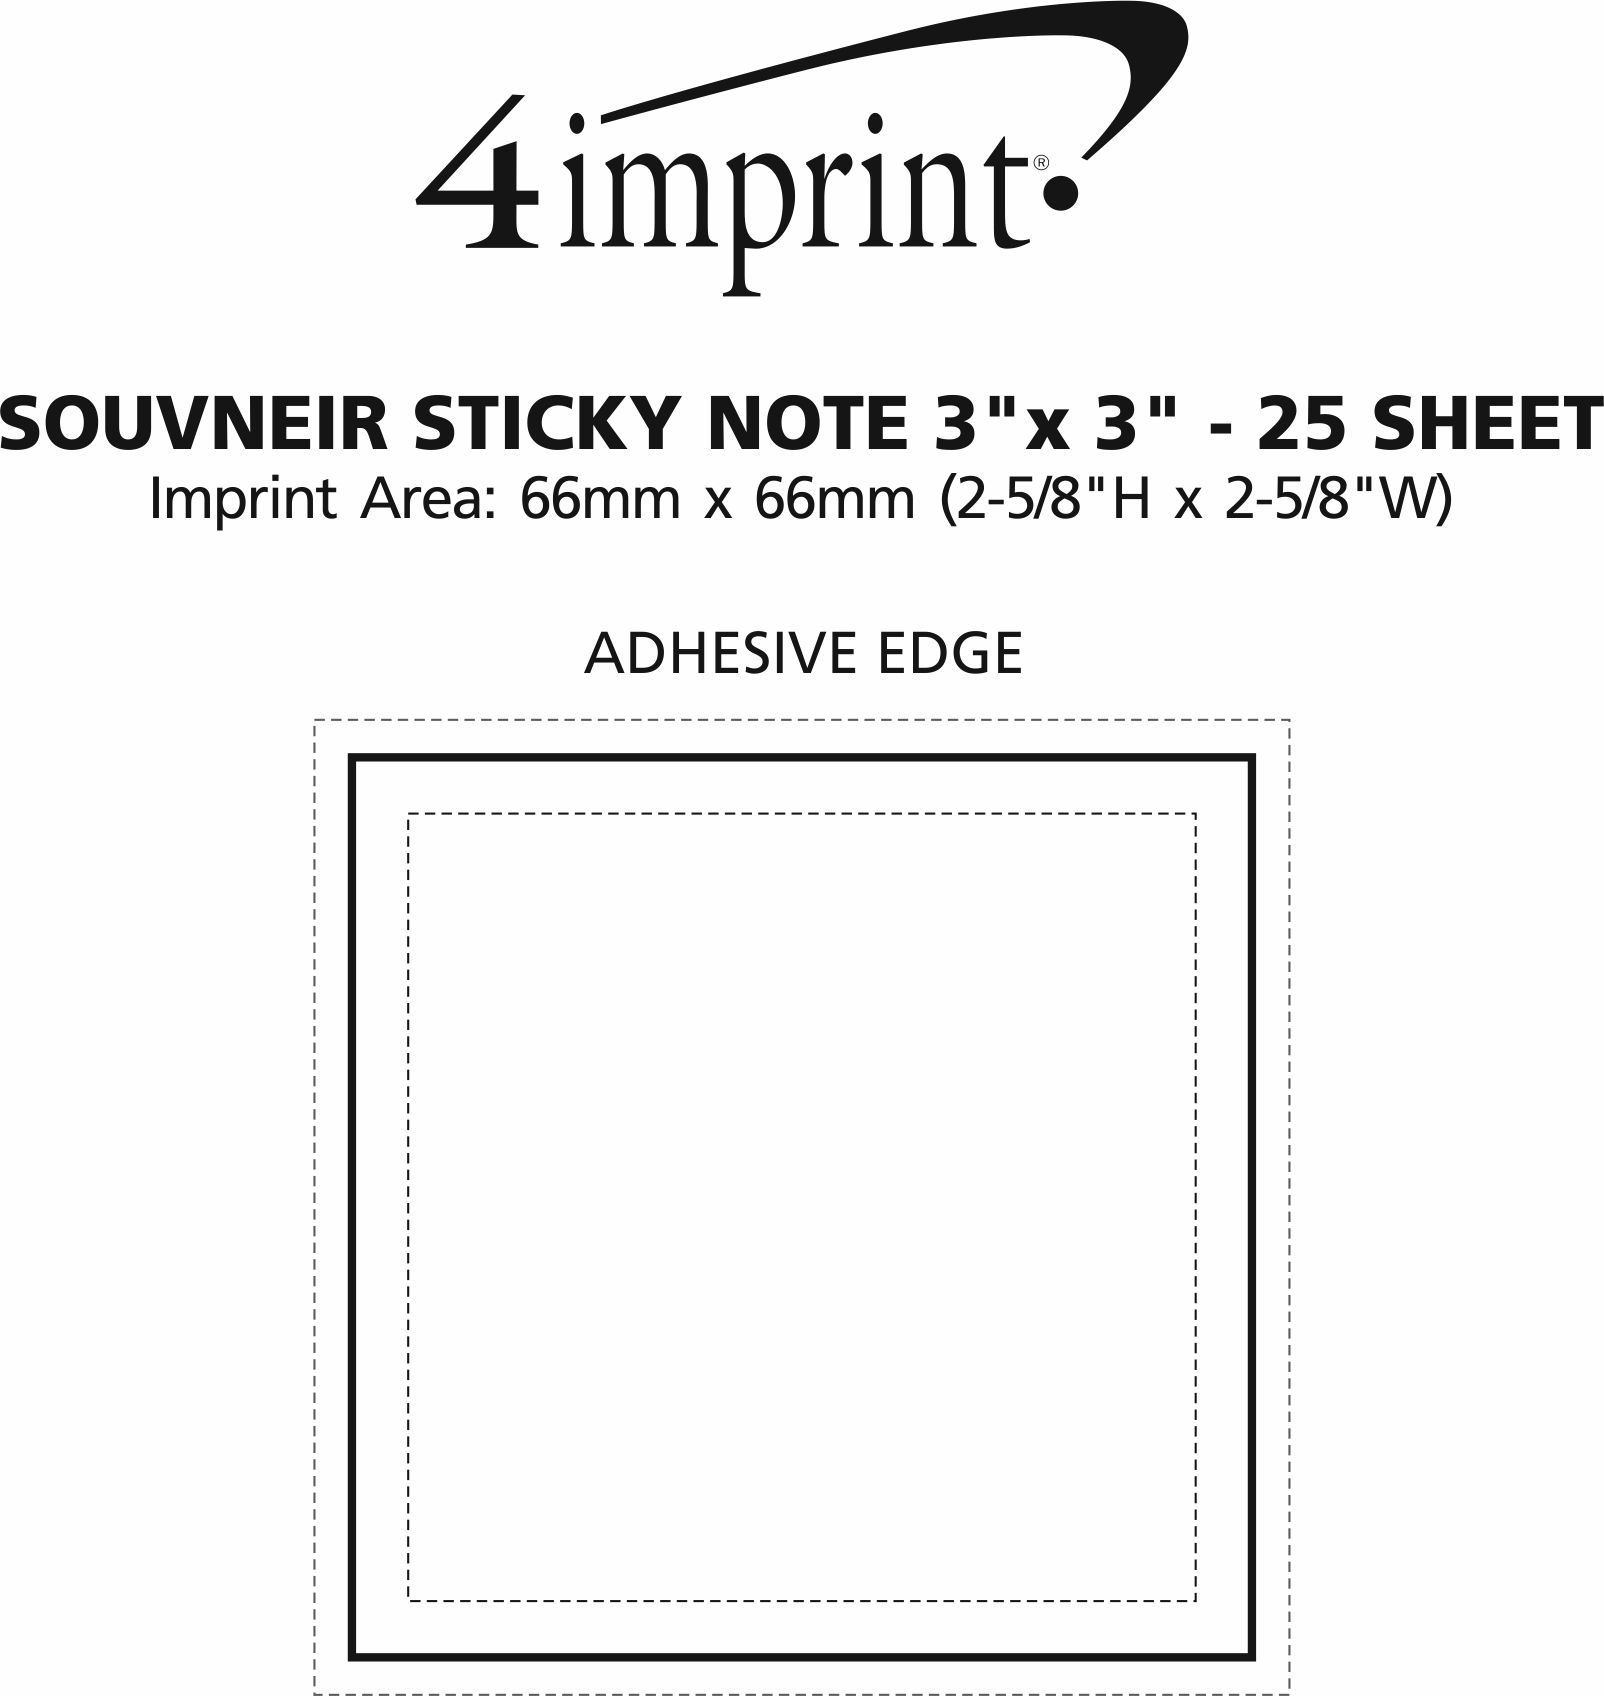 "Imprint Area of Bic Sticky Note 3"" x 3"" - 25 Sheet"